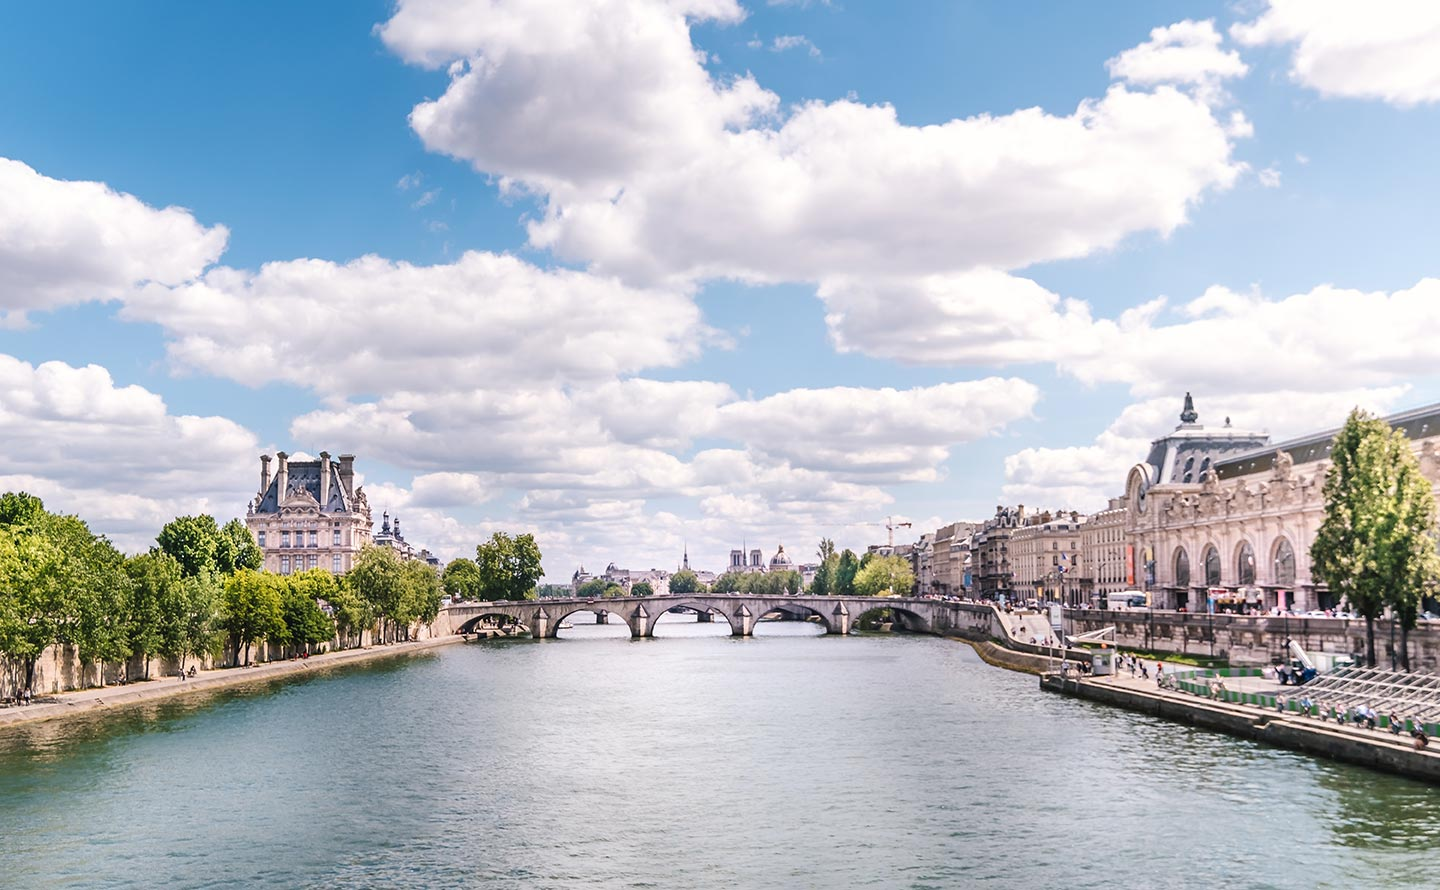 paris top attractions cruise down the seine river